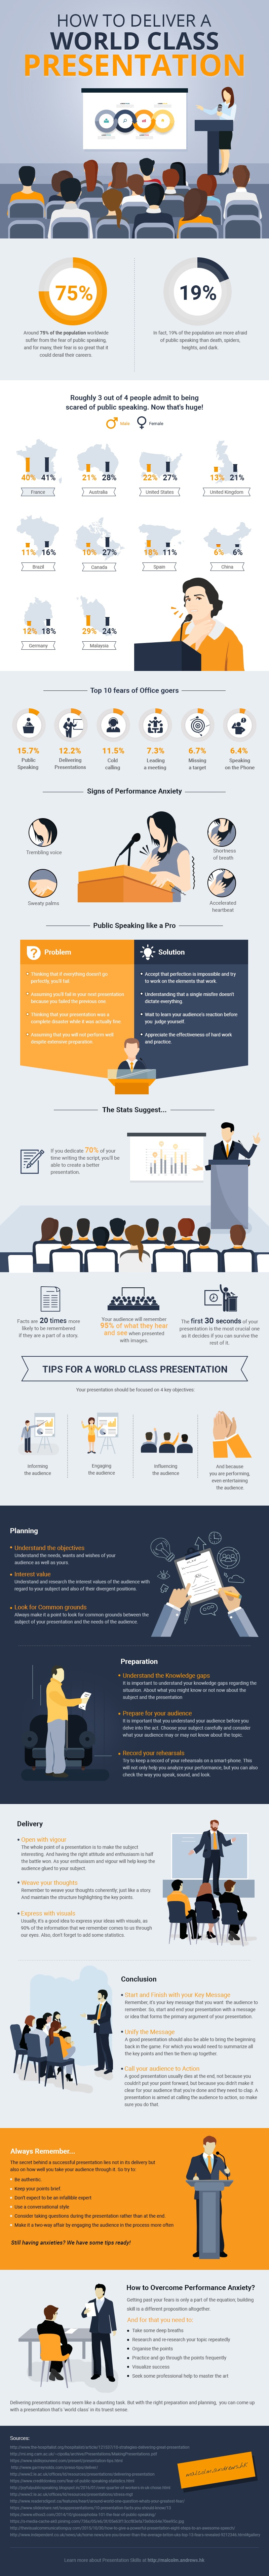 How to Deliver a World Class Presentation Infographic